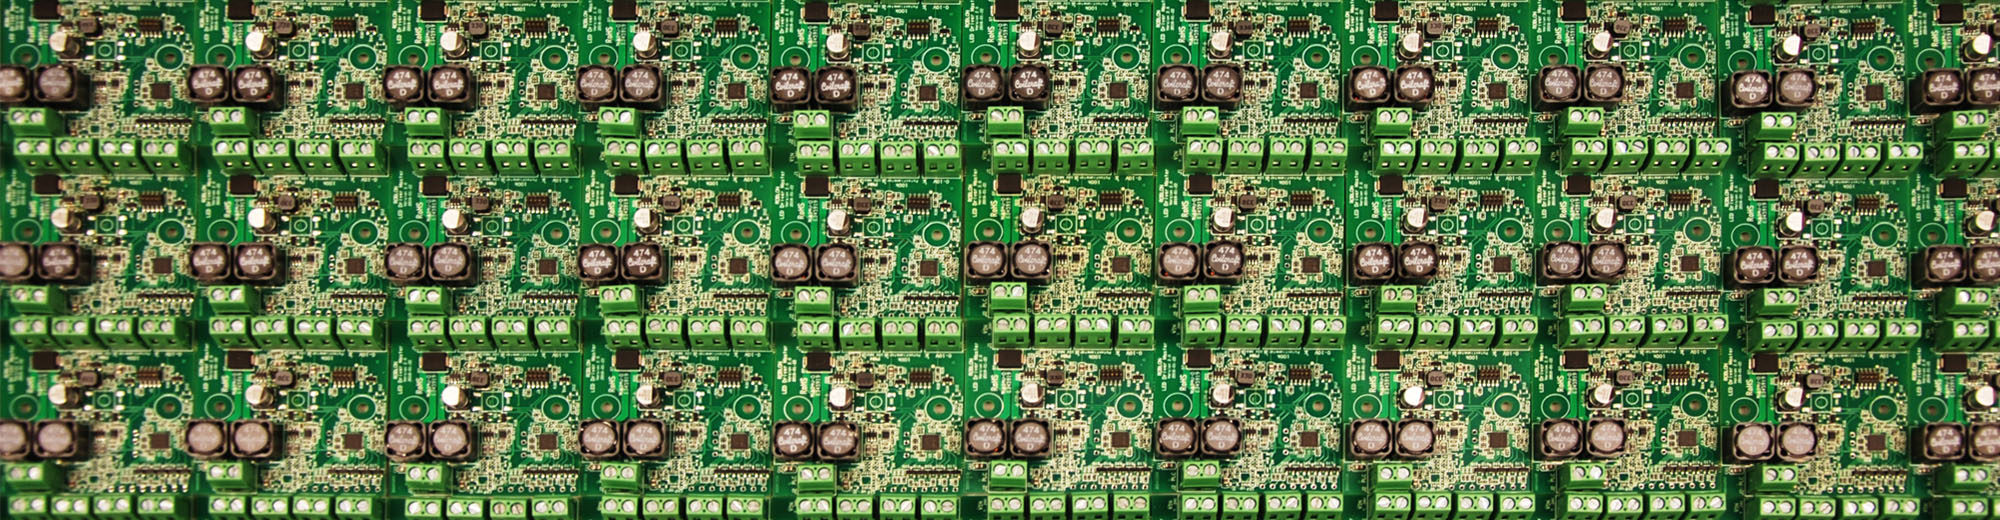 We are also faced with the global shortage of semiconductors